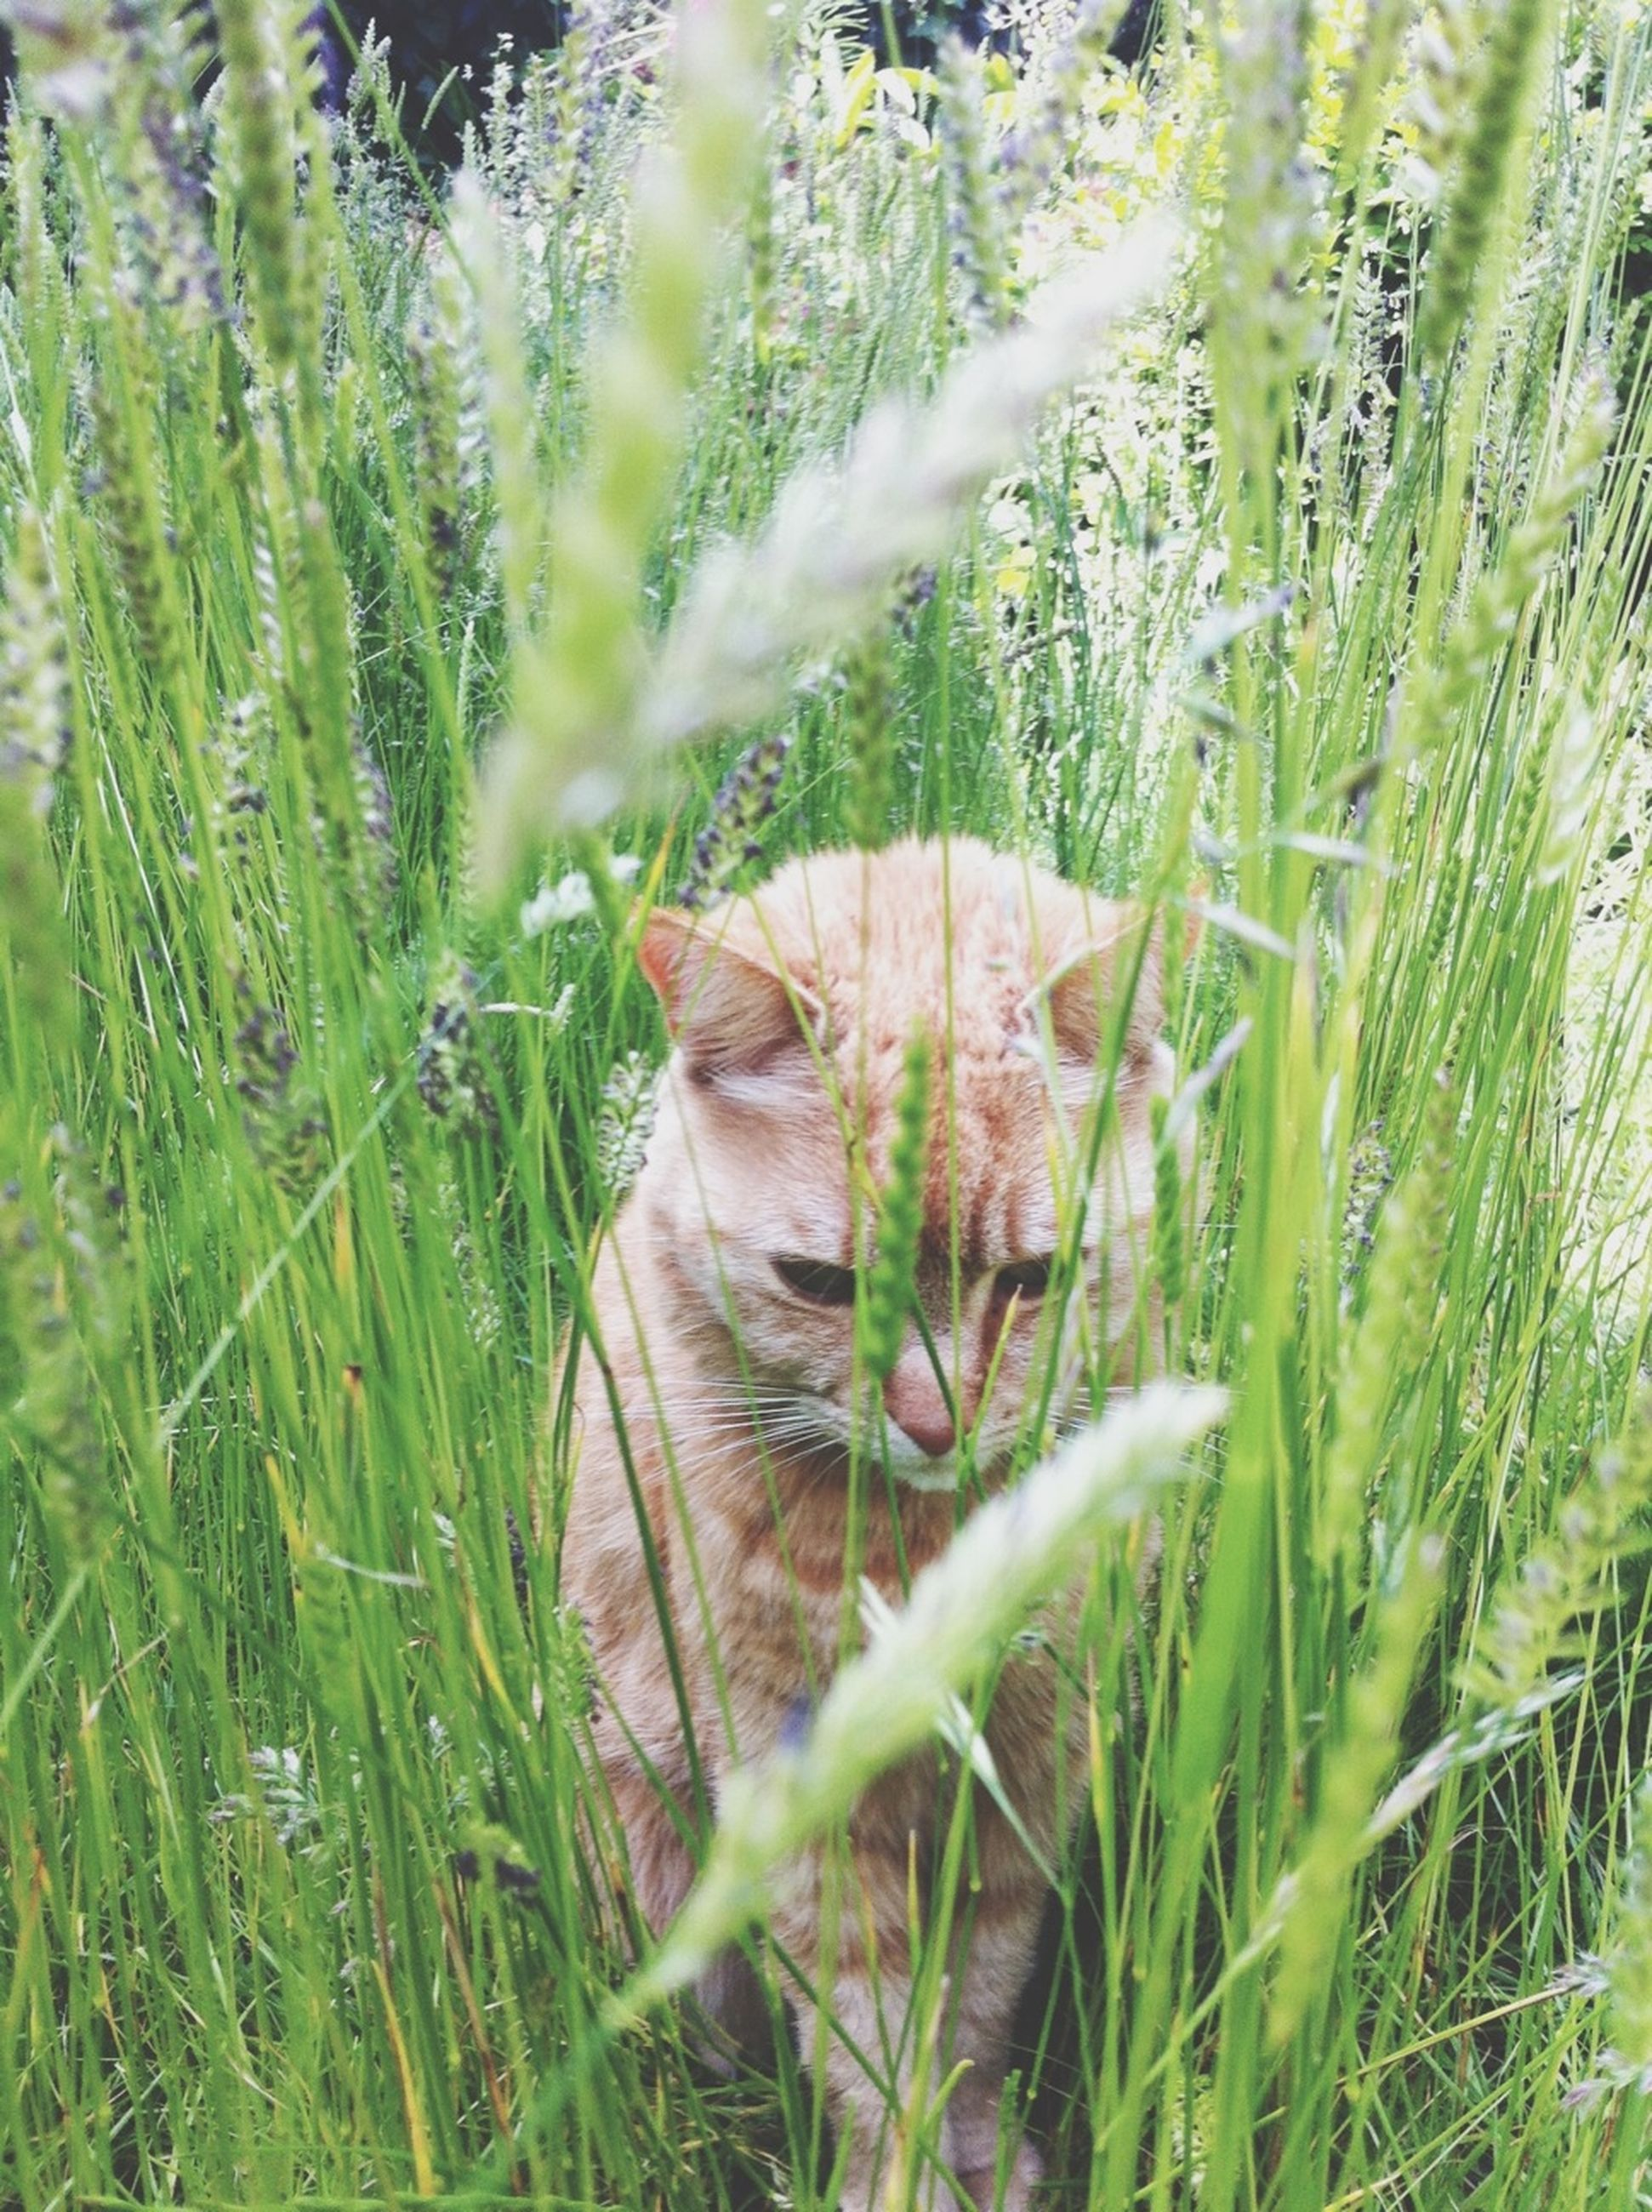 animal themes, mammal, one animal, grass, domestic animals, domestic cat, pets, cat, feline, plant, field, growth, relaxation, nature, whisker, grassy, green color, day, outdoors, no people